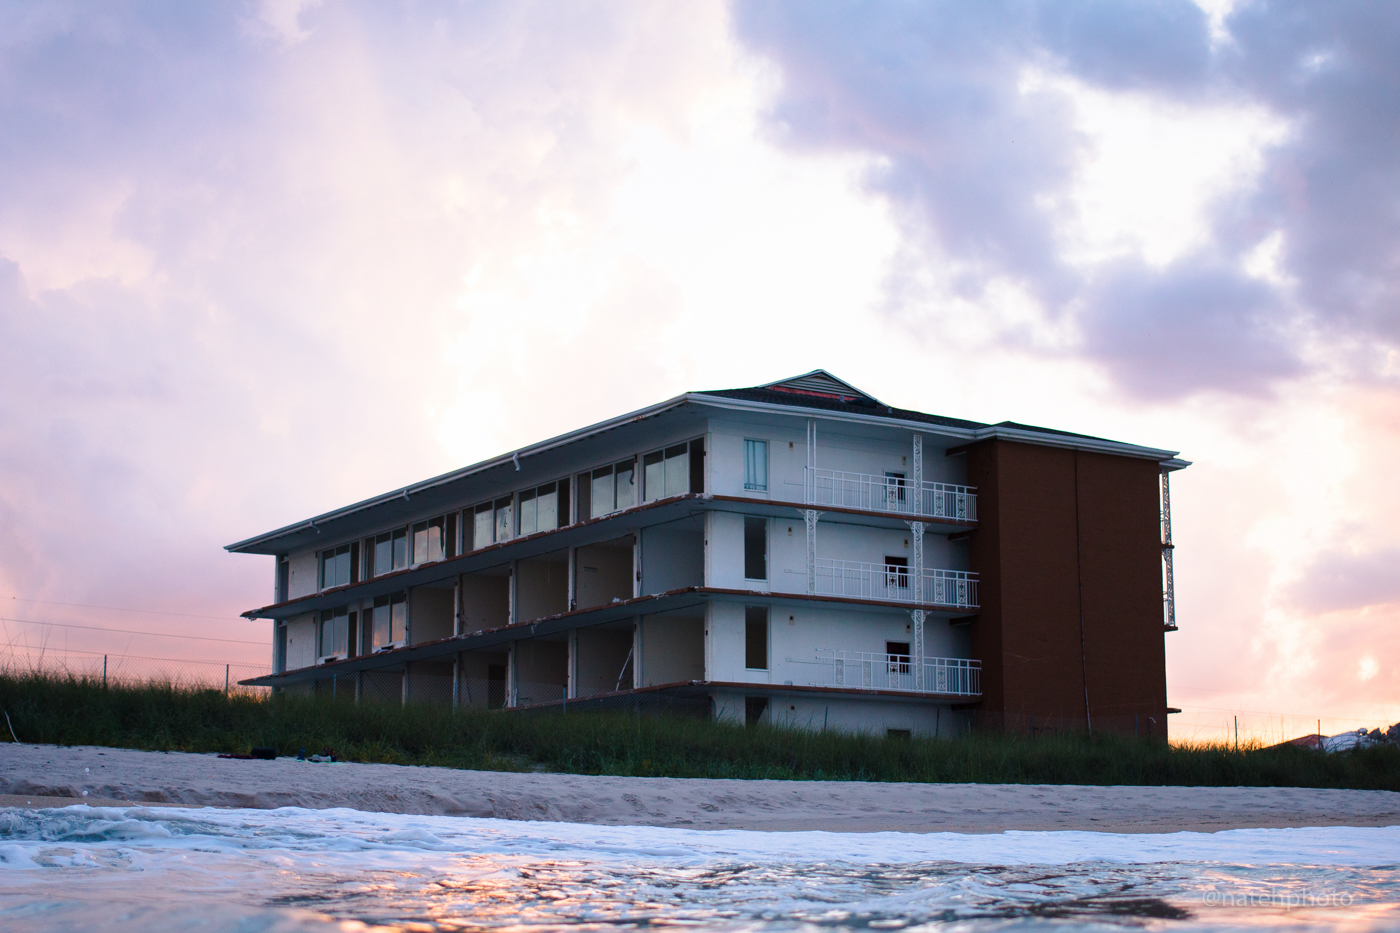 The Surf & Sand Hotel is quickly disappearing...